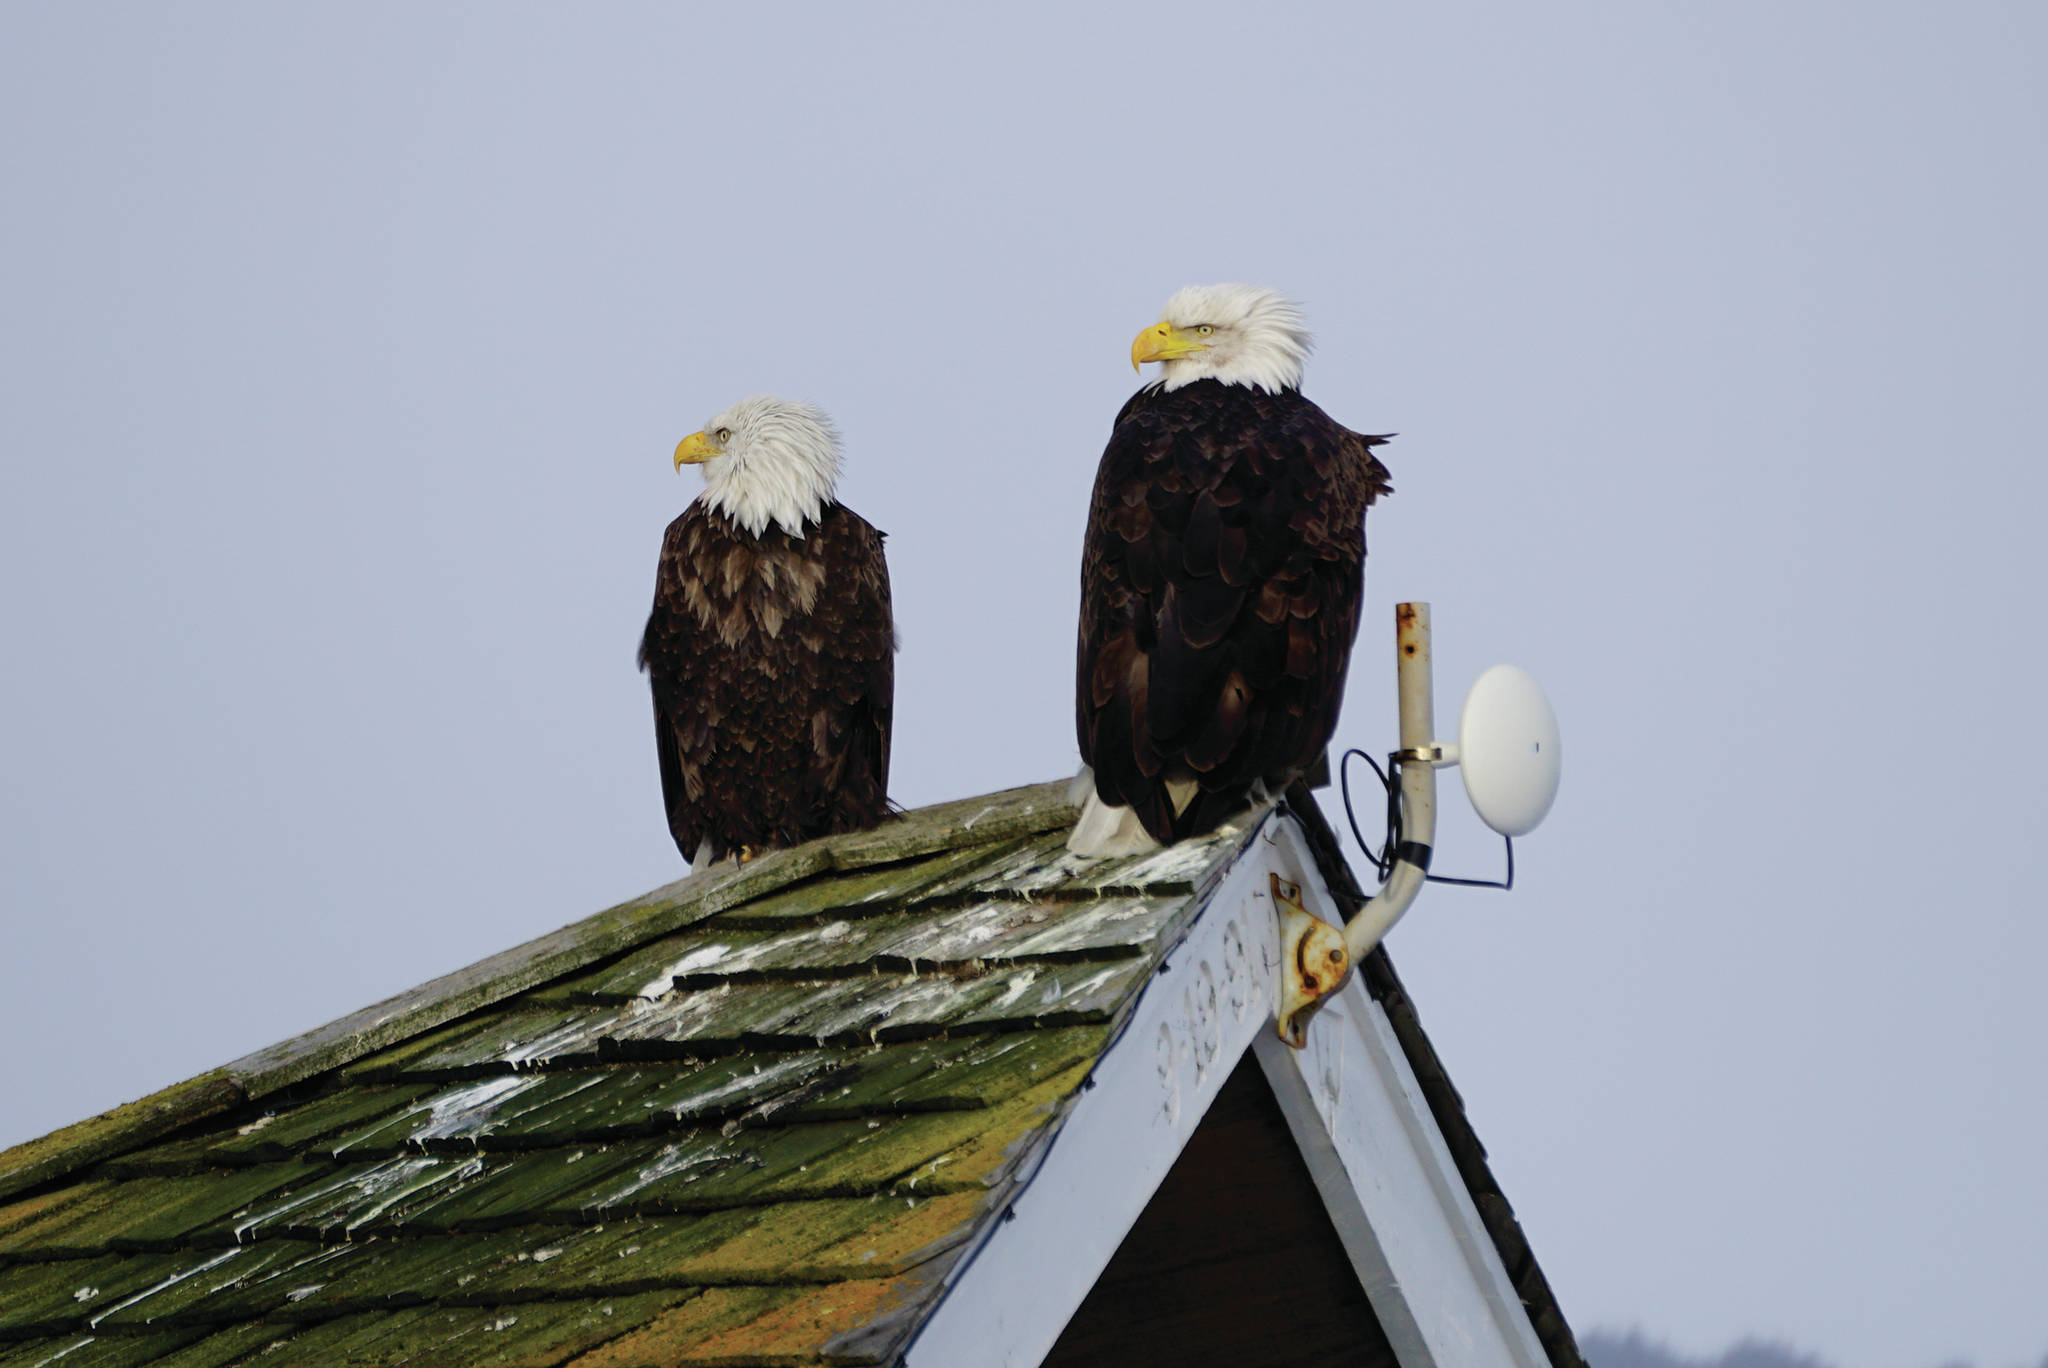 A pair of bald eagles sit on top of a house roof on Valentine's Day, Feb. 14, 2020, on the Homer Spit in Homer, Alaska. (Photo by Michael Armstrong/Homer News)